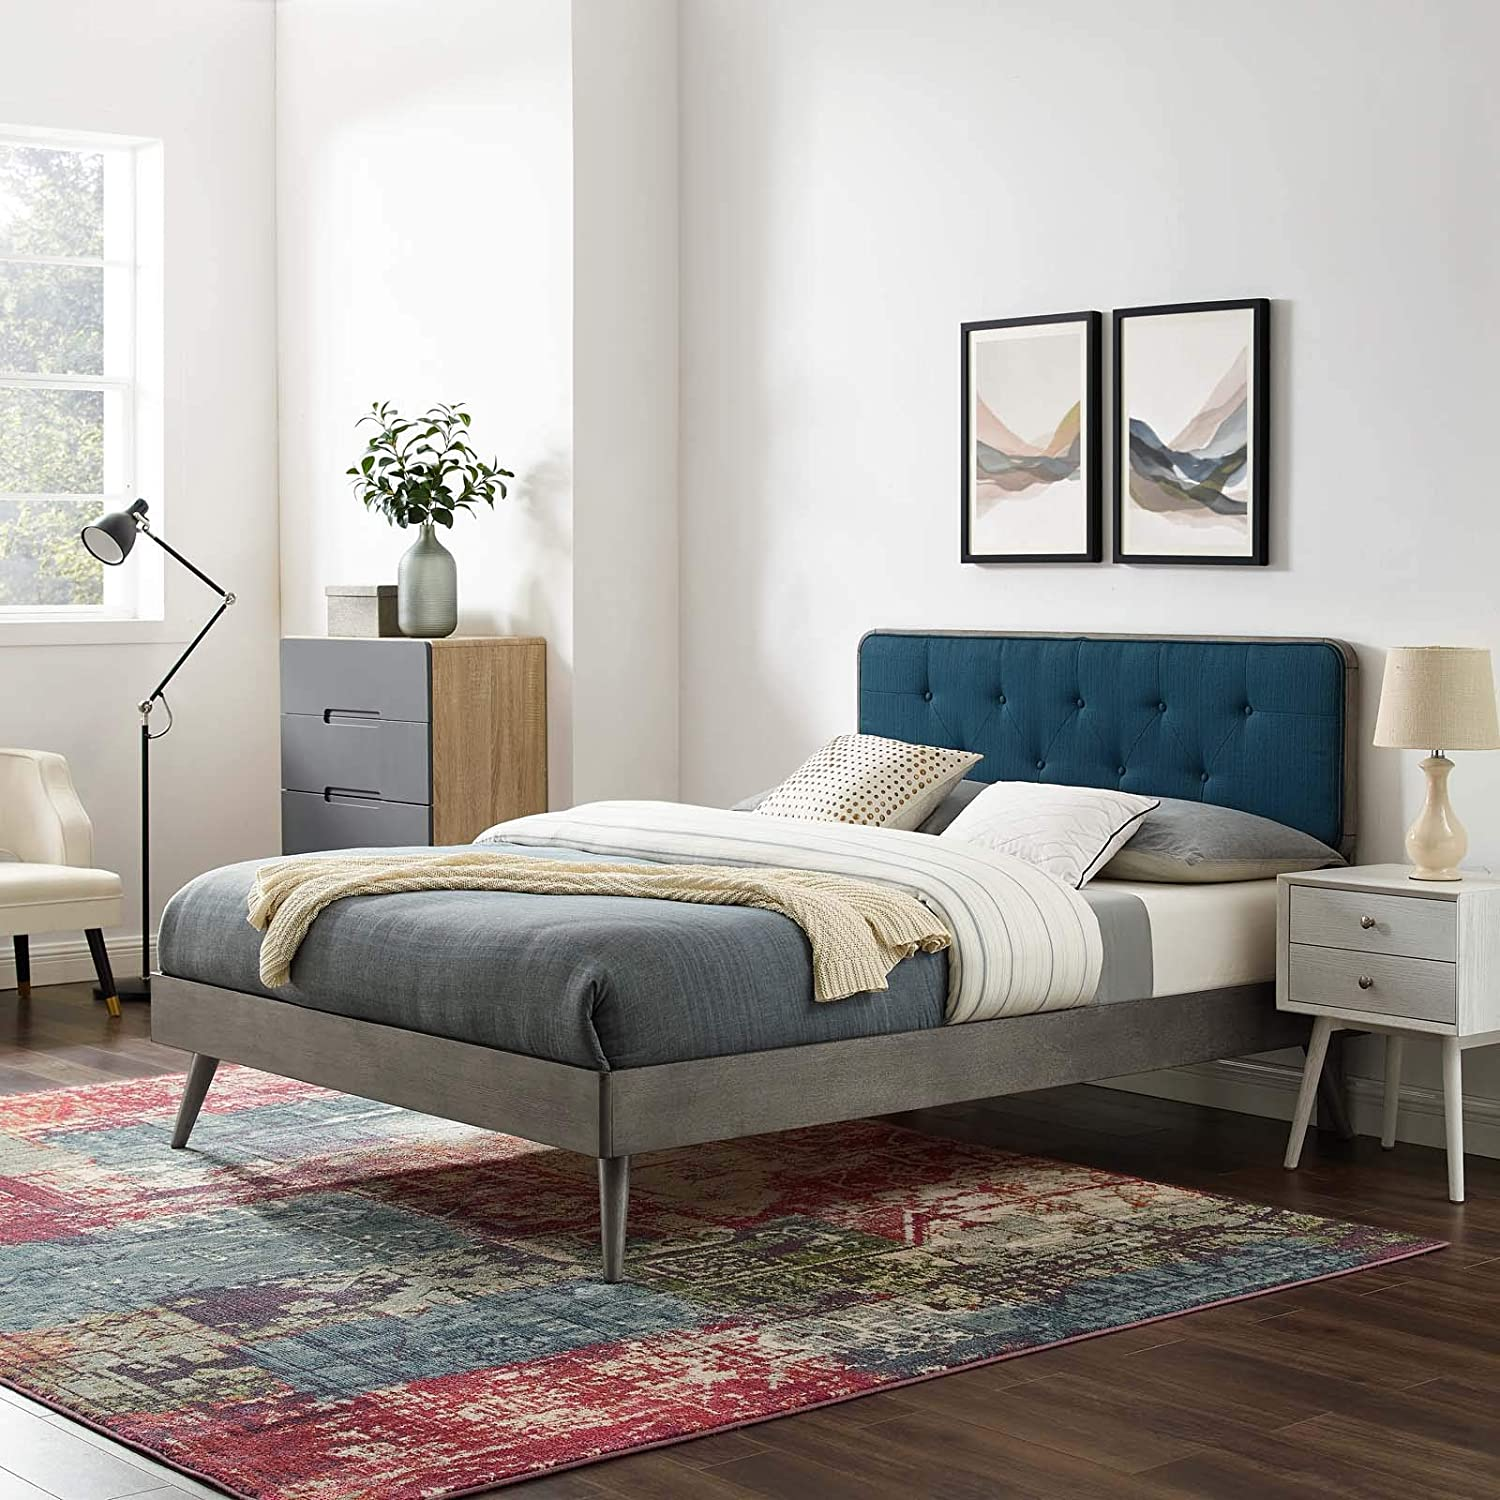 Modway Bridgette Wood Full Platform Bed in Gray Azure with Splayed Legs, Double